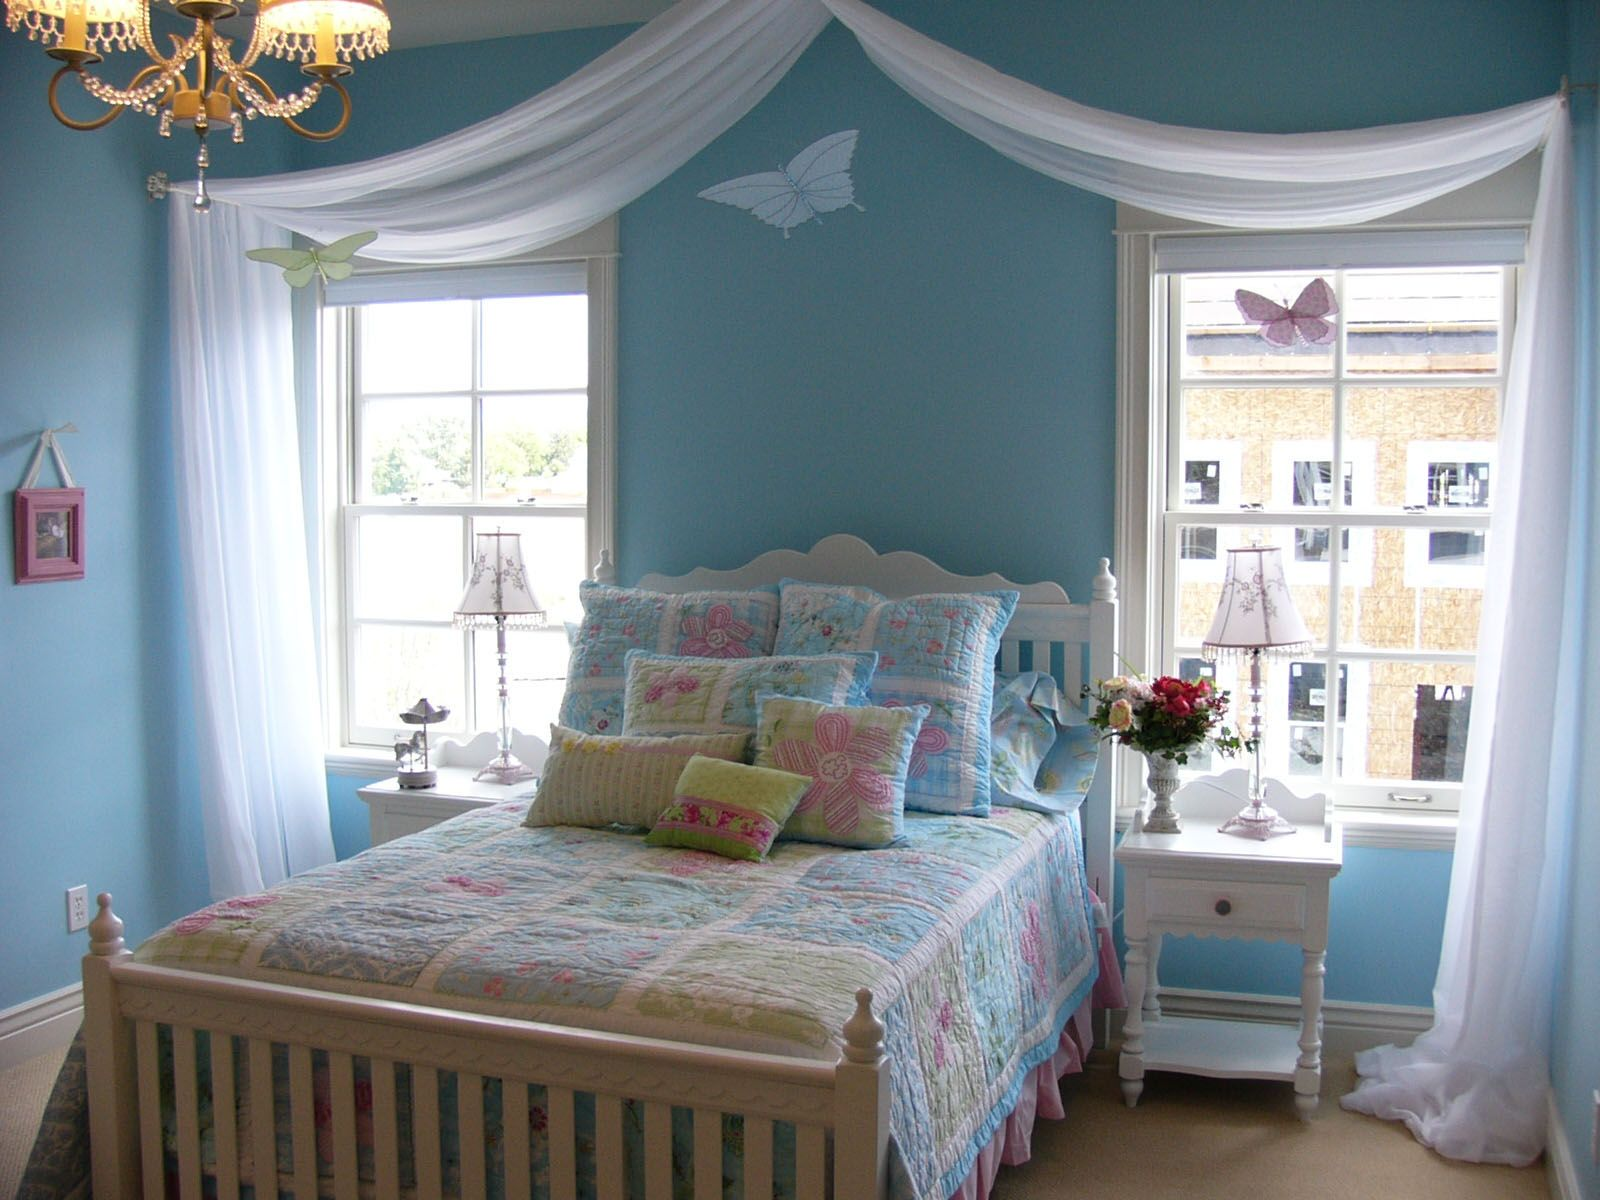 1000+ images about Girl's Room on Pinterest